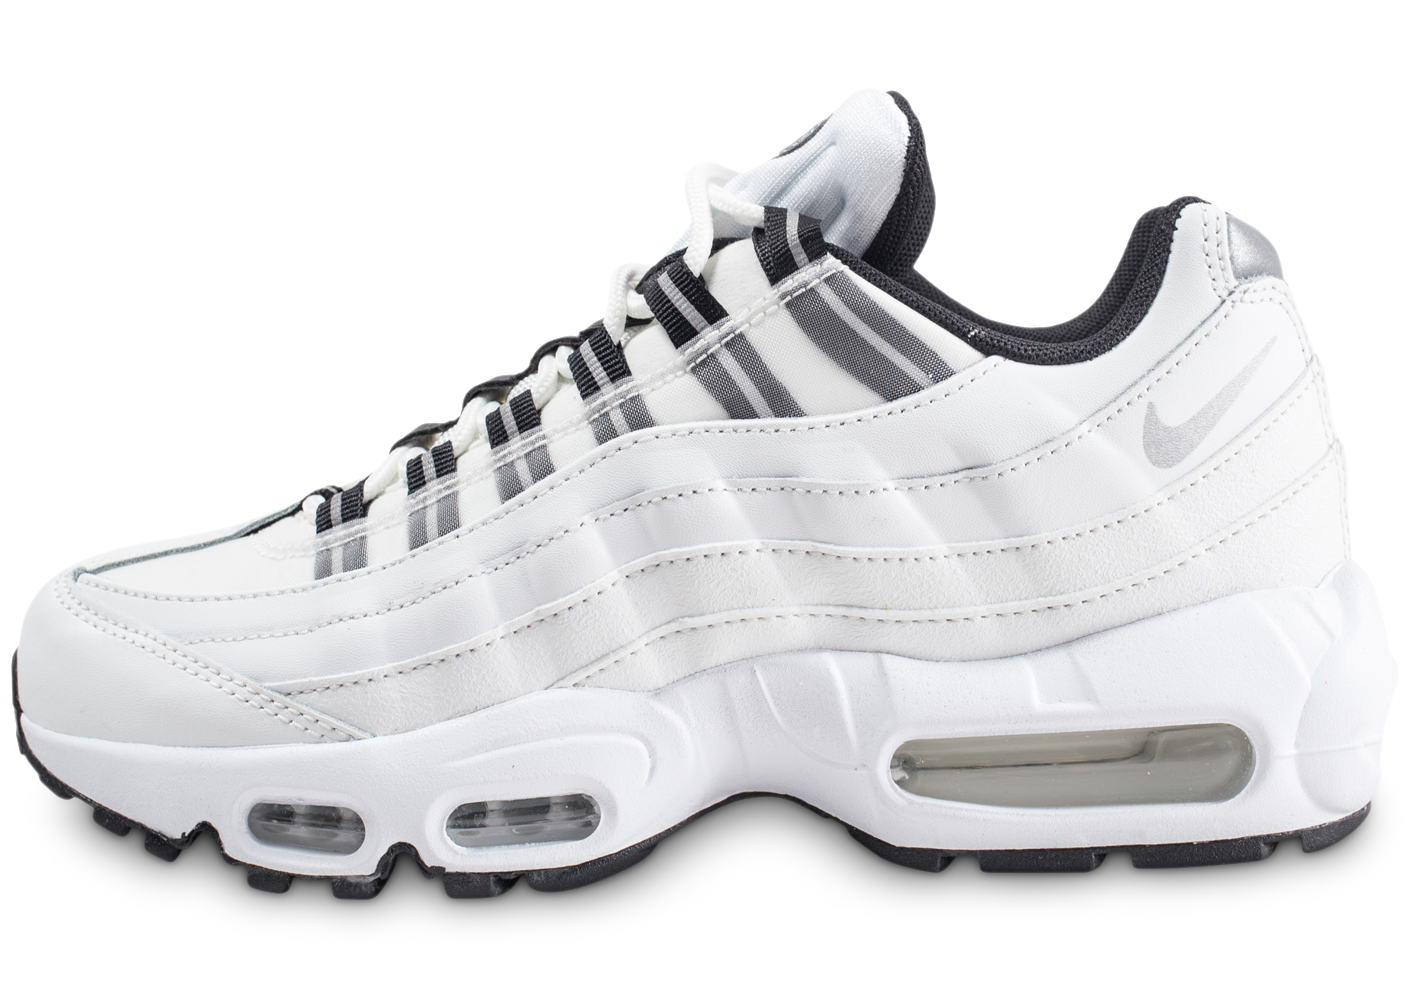 best authentic cc76f e5698 Nike air max 95 blanche et argent femme baskets